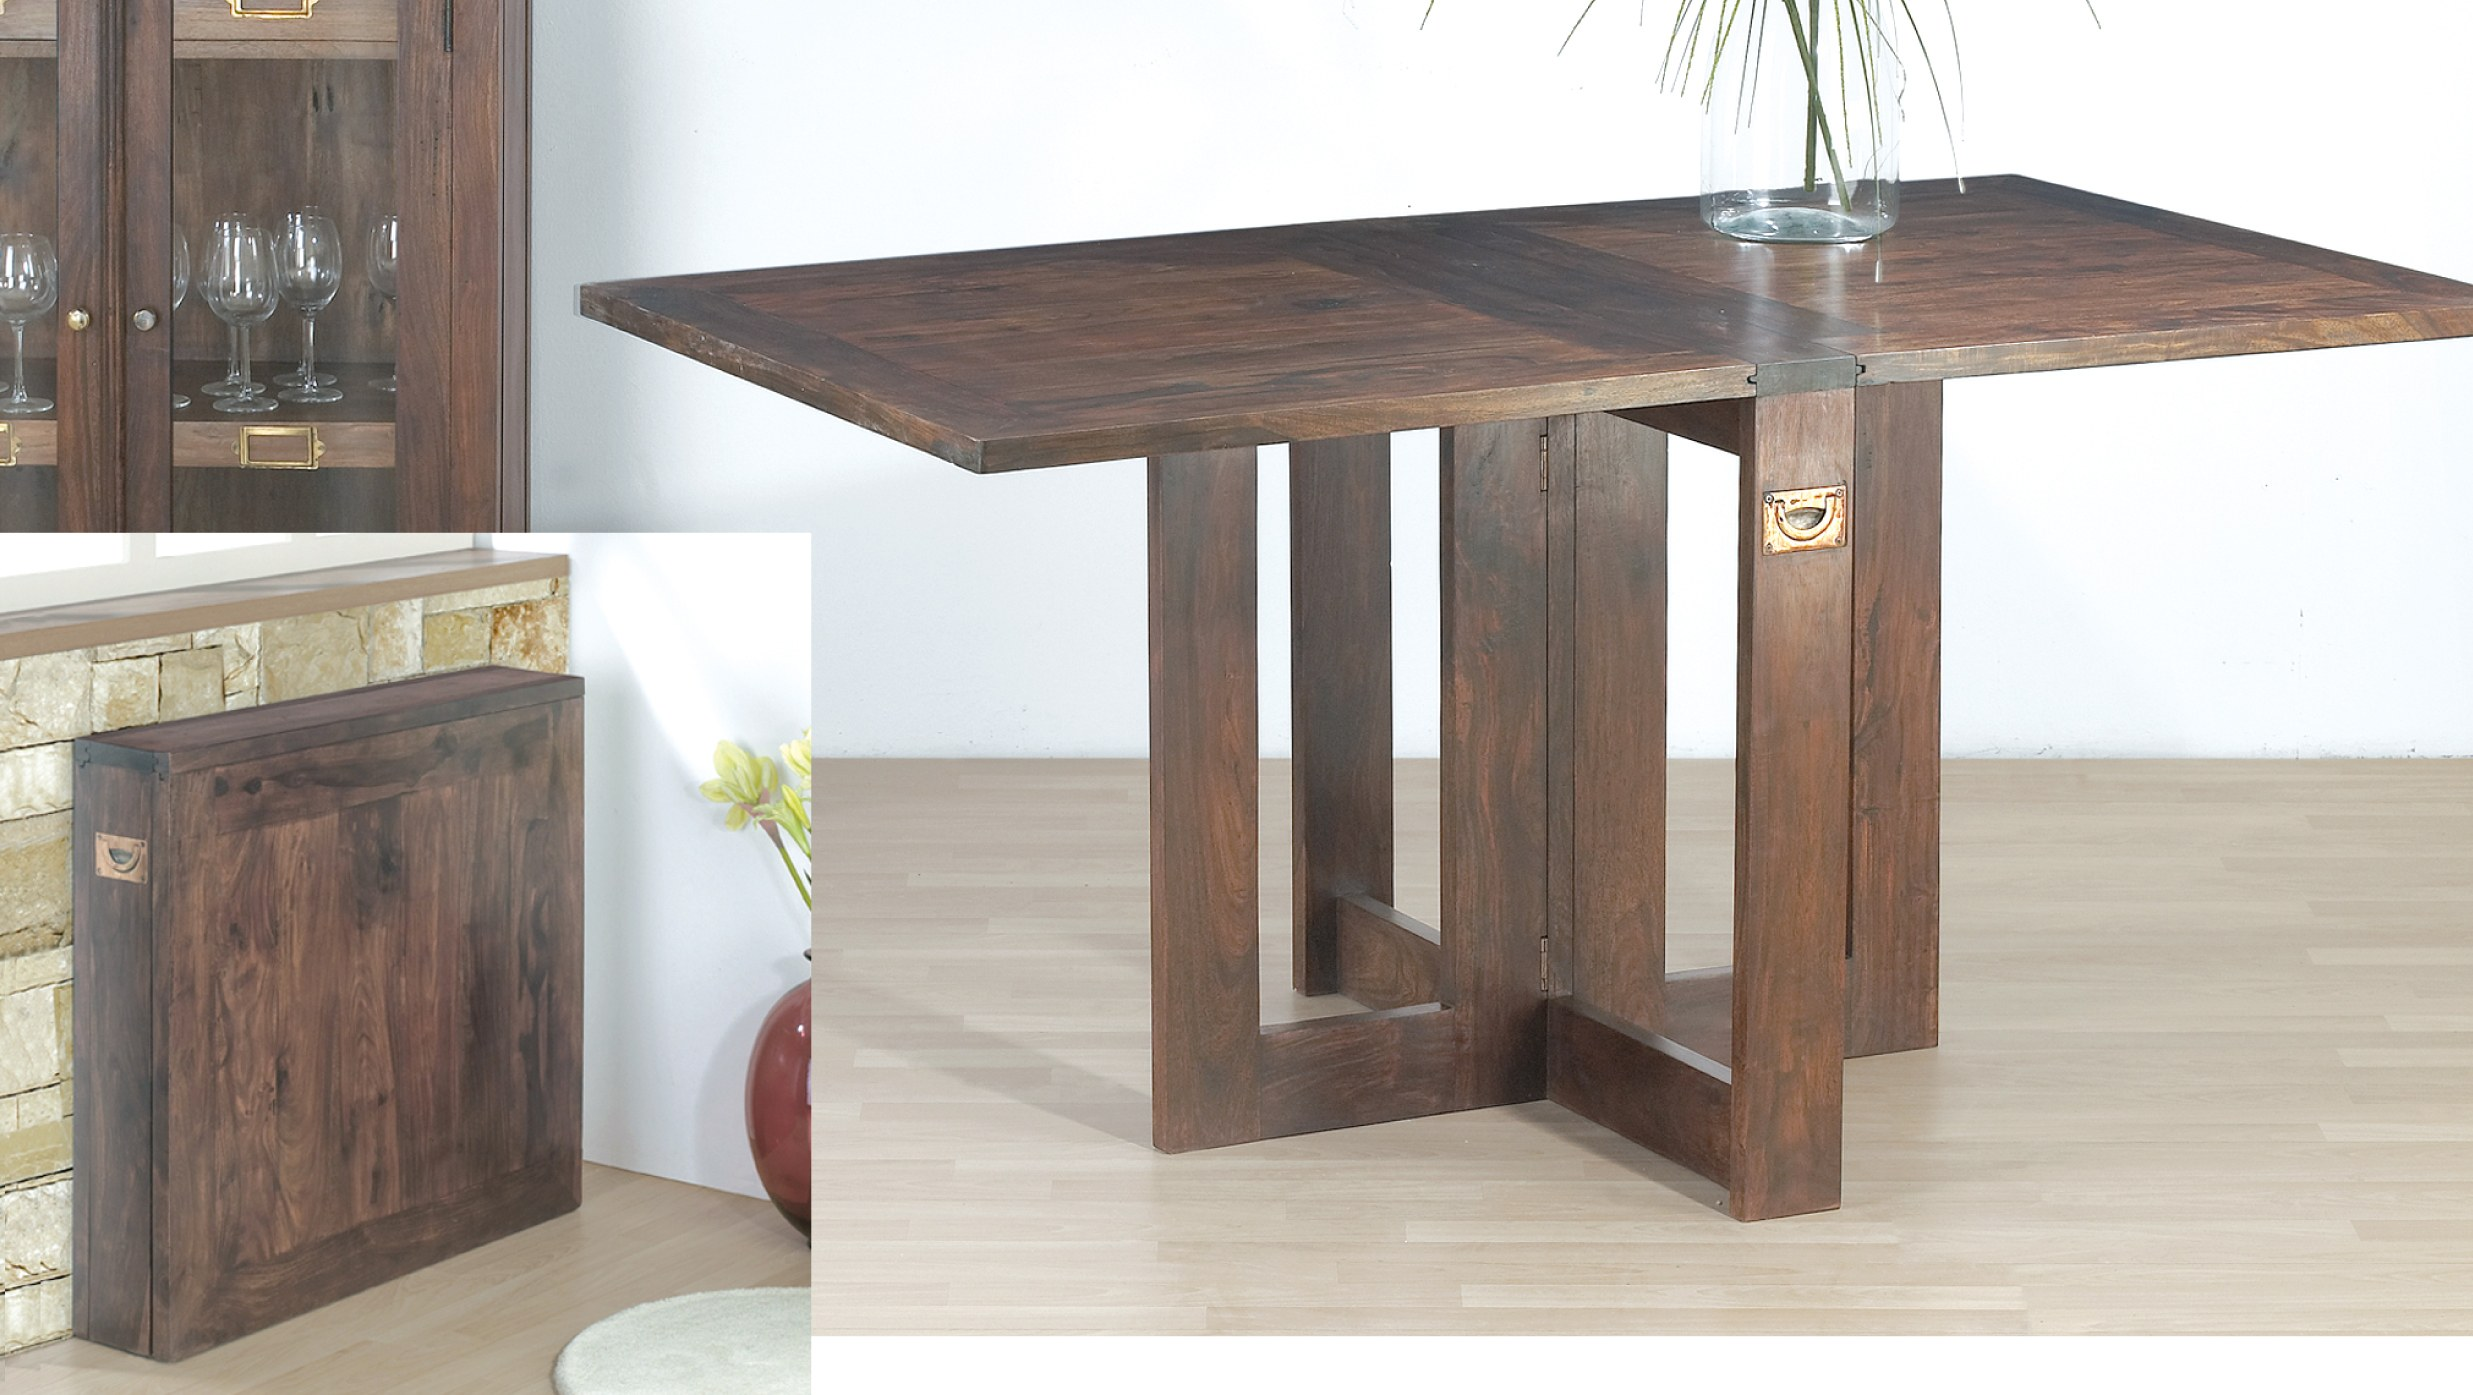 Folding Dining Table Online Shopping  : im 35 531 from www.craftsvilla.com size 2473 x 1395 jpeg 437kB